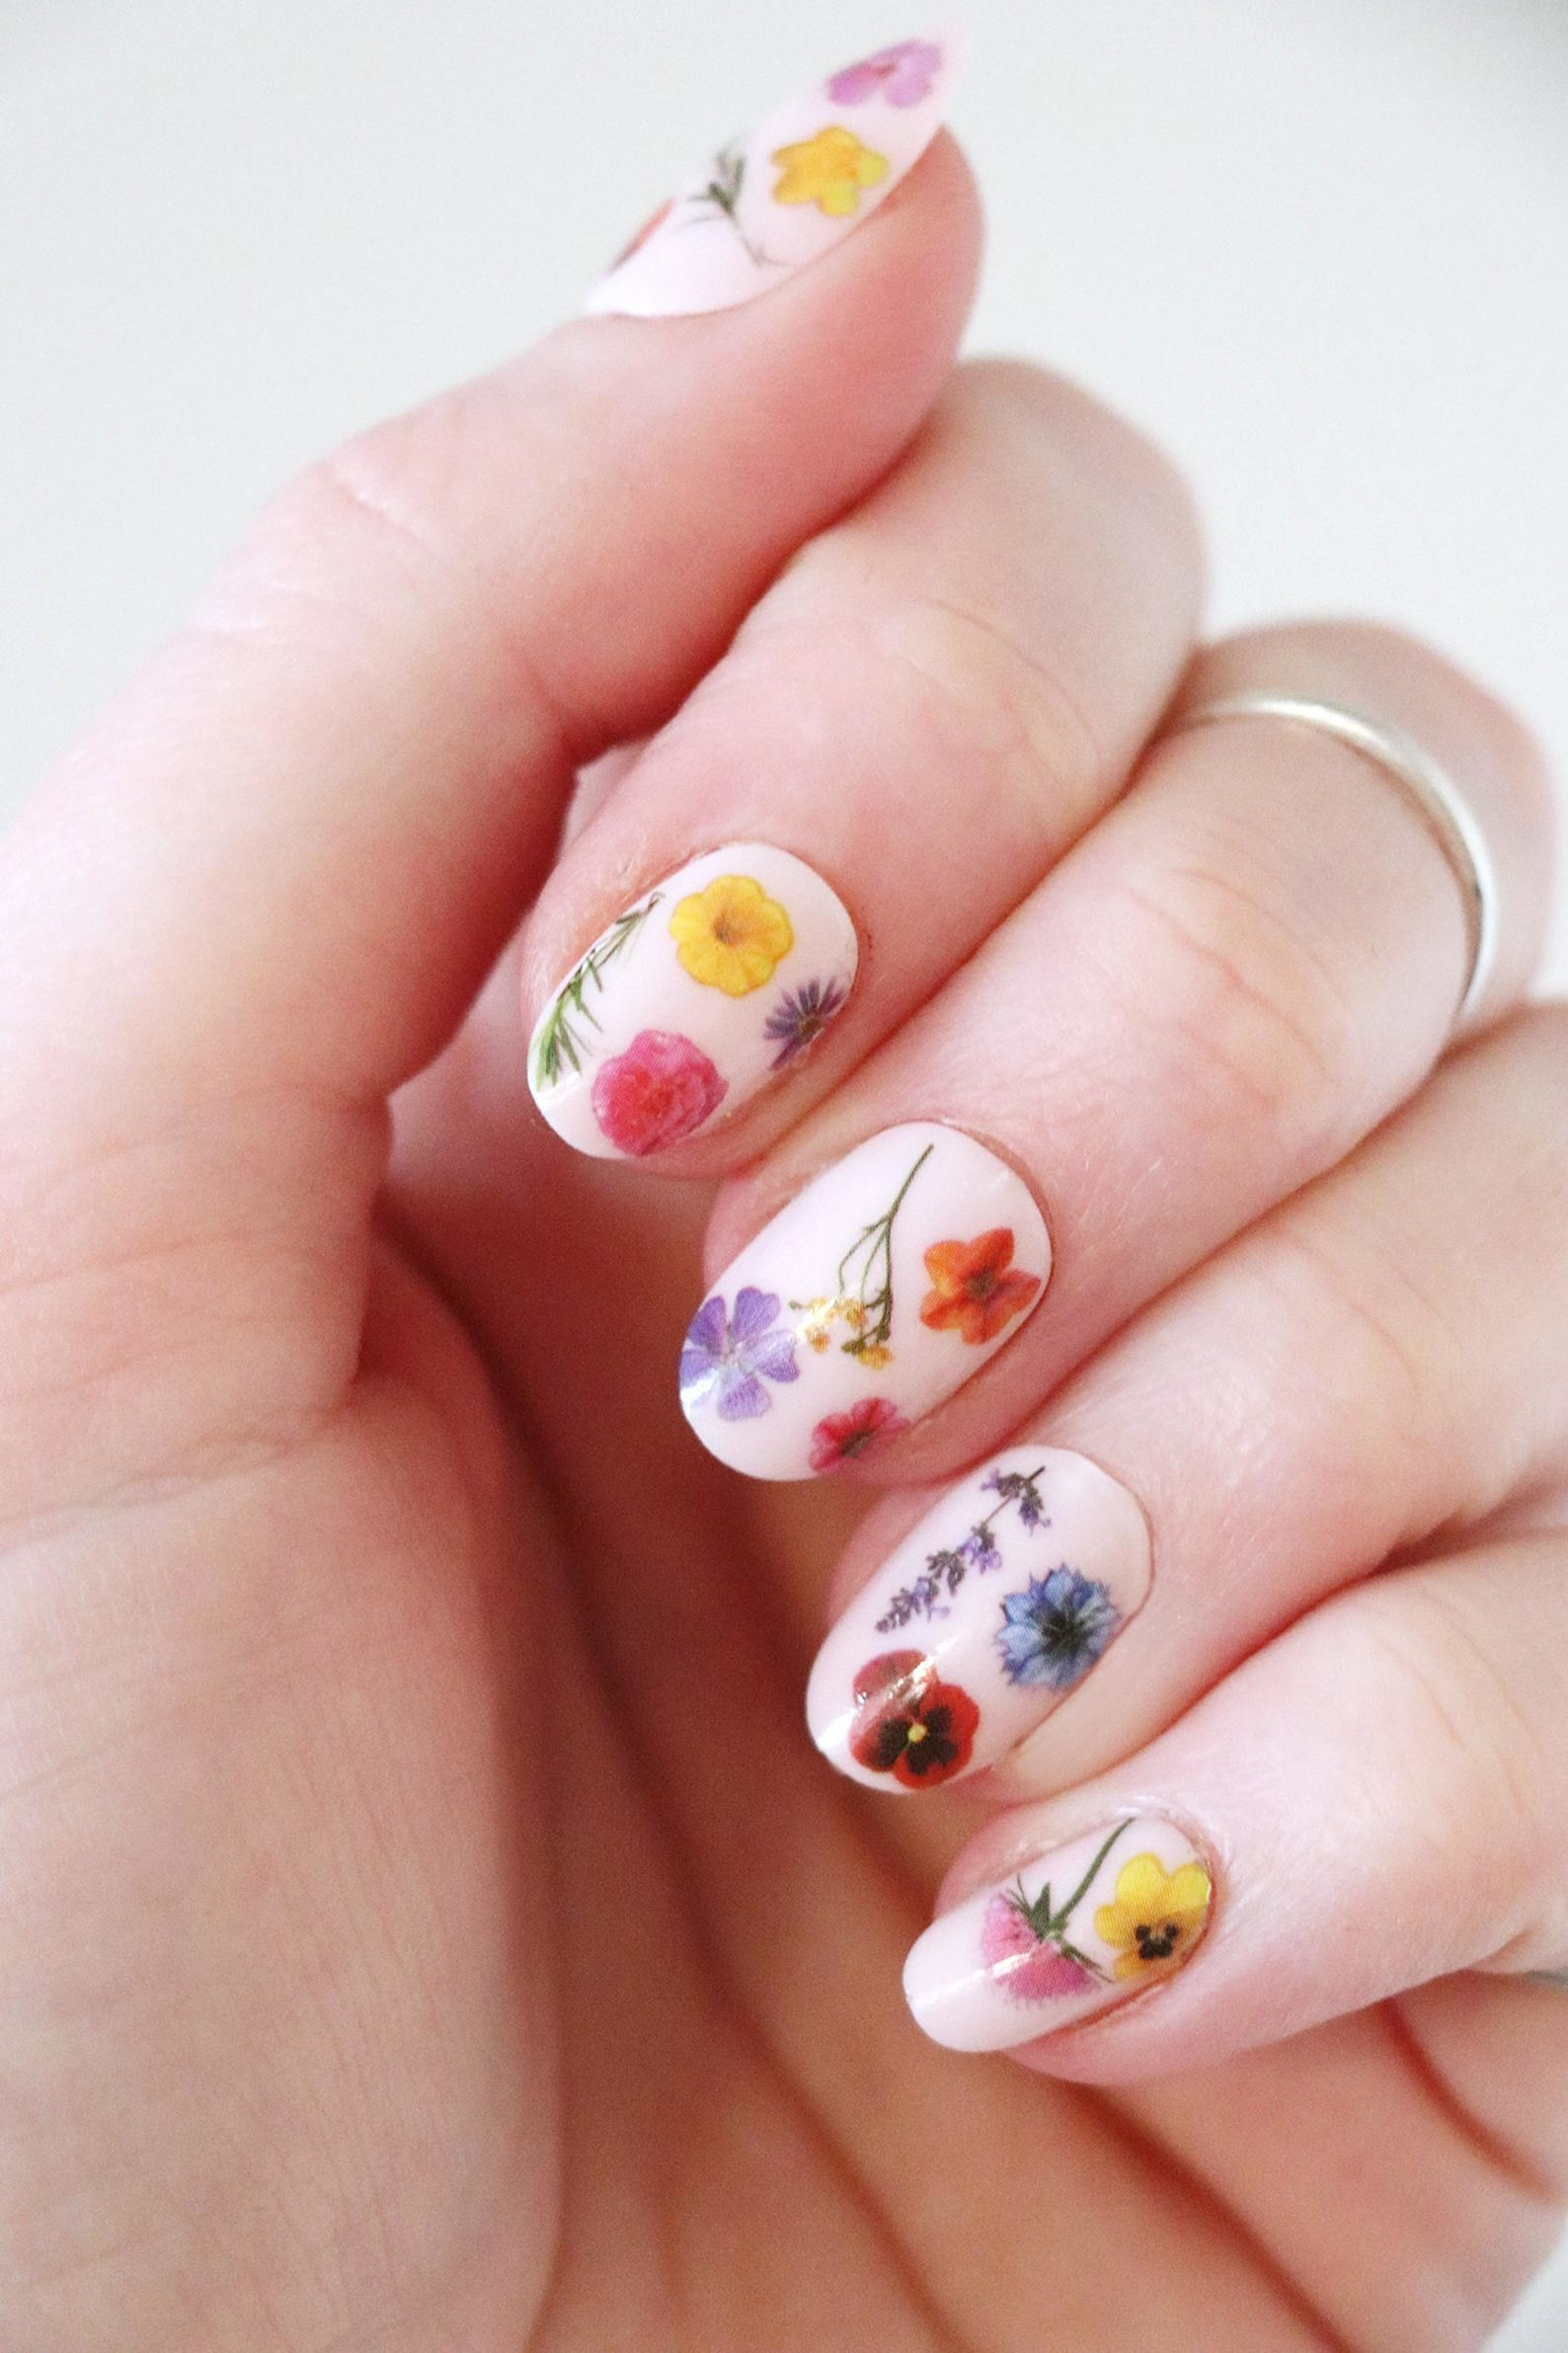 person with the floral nail tattoos on their nails